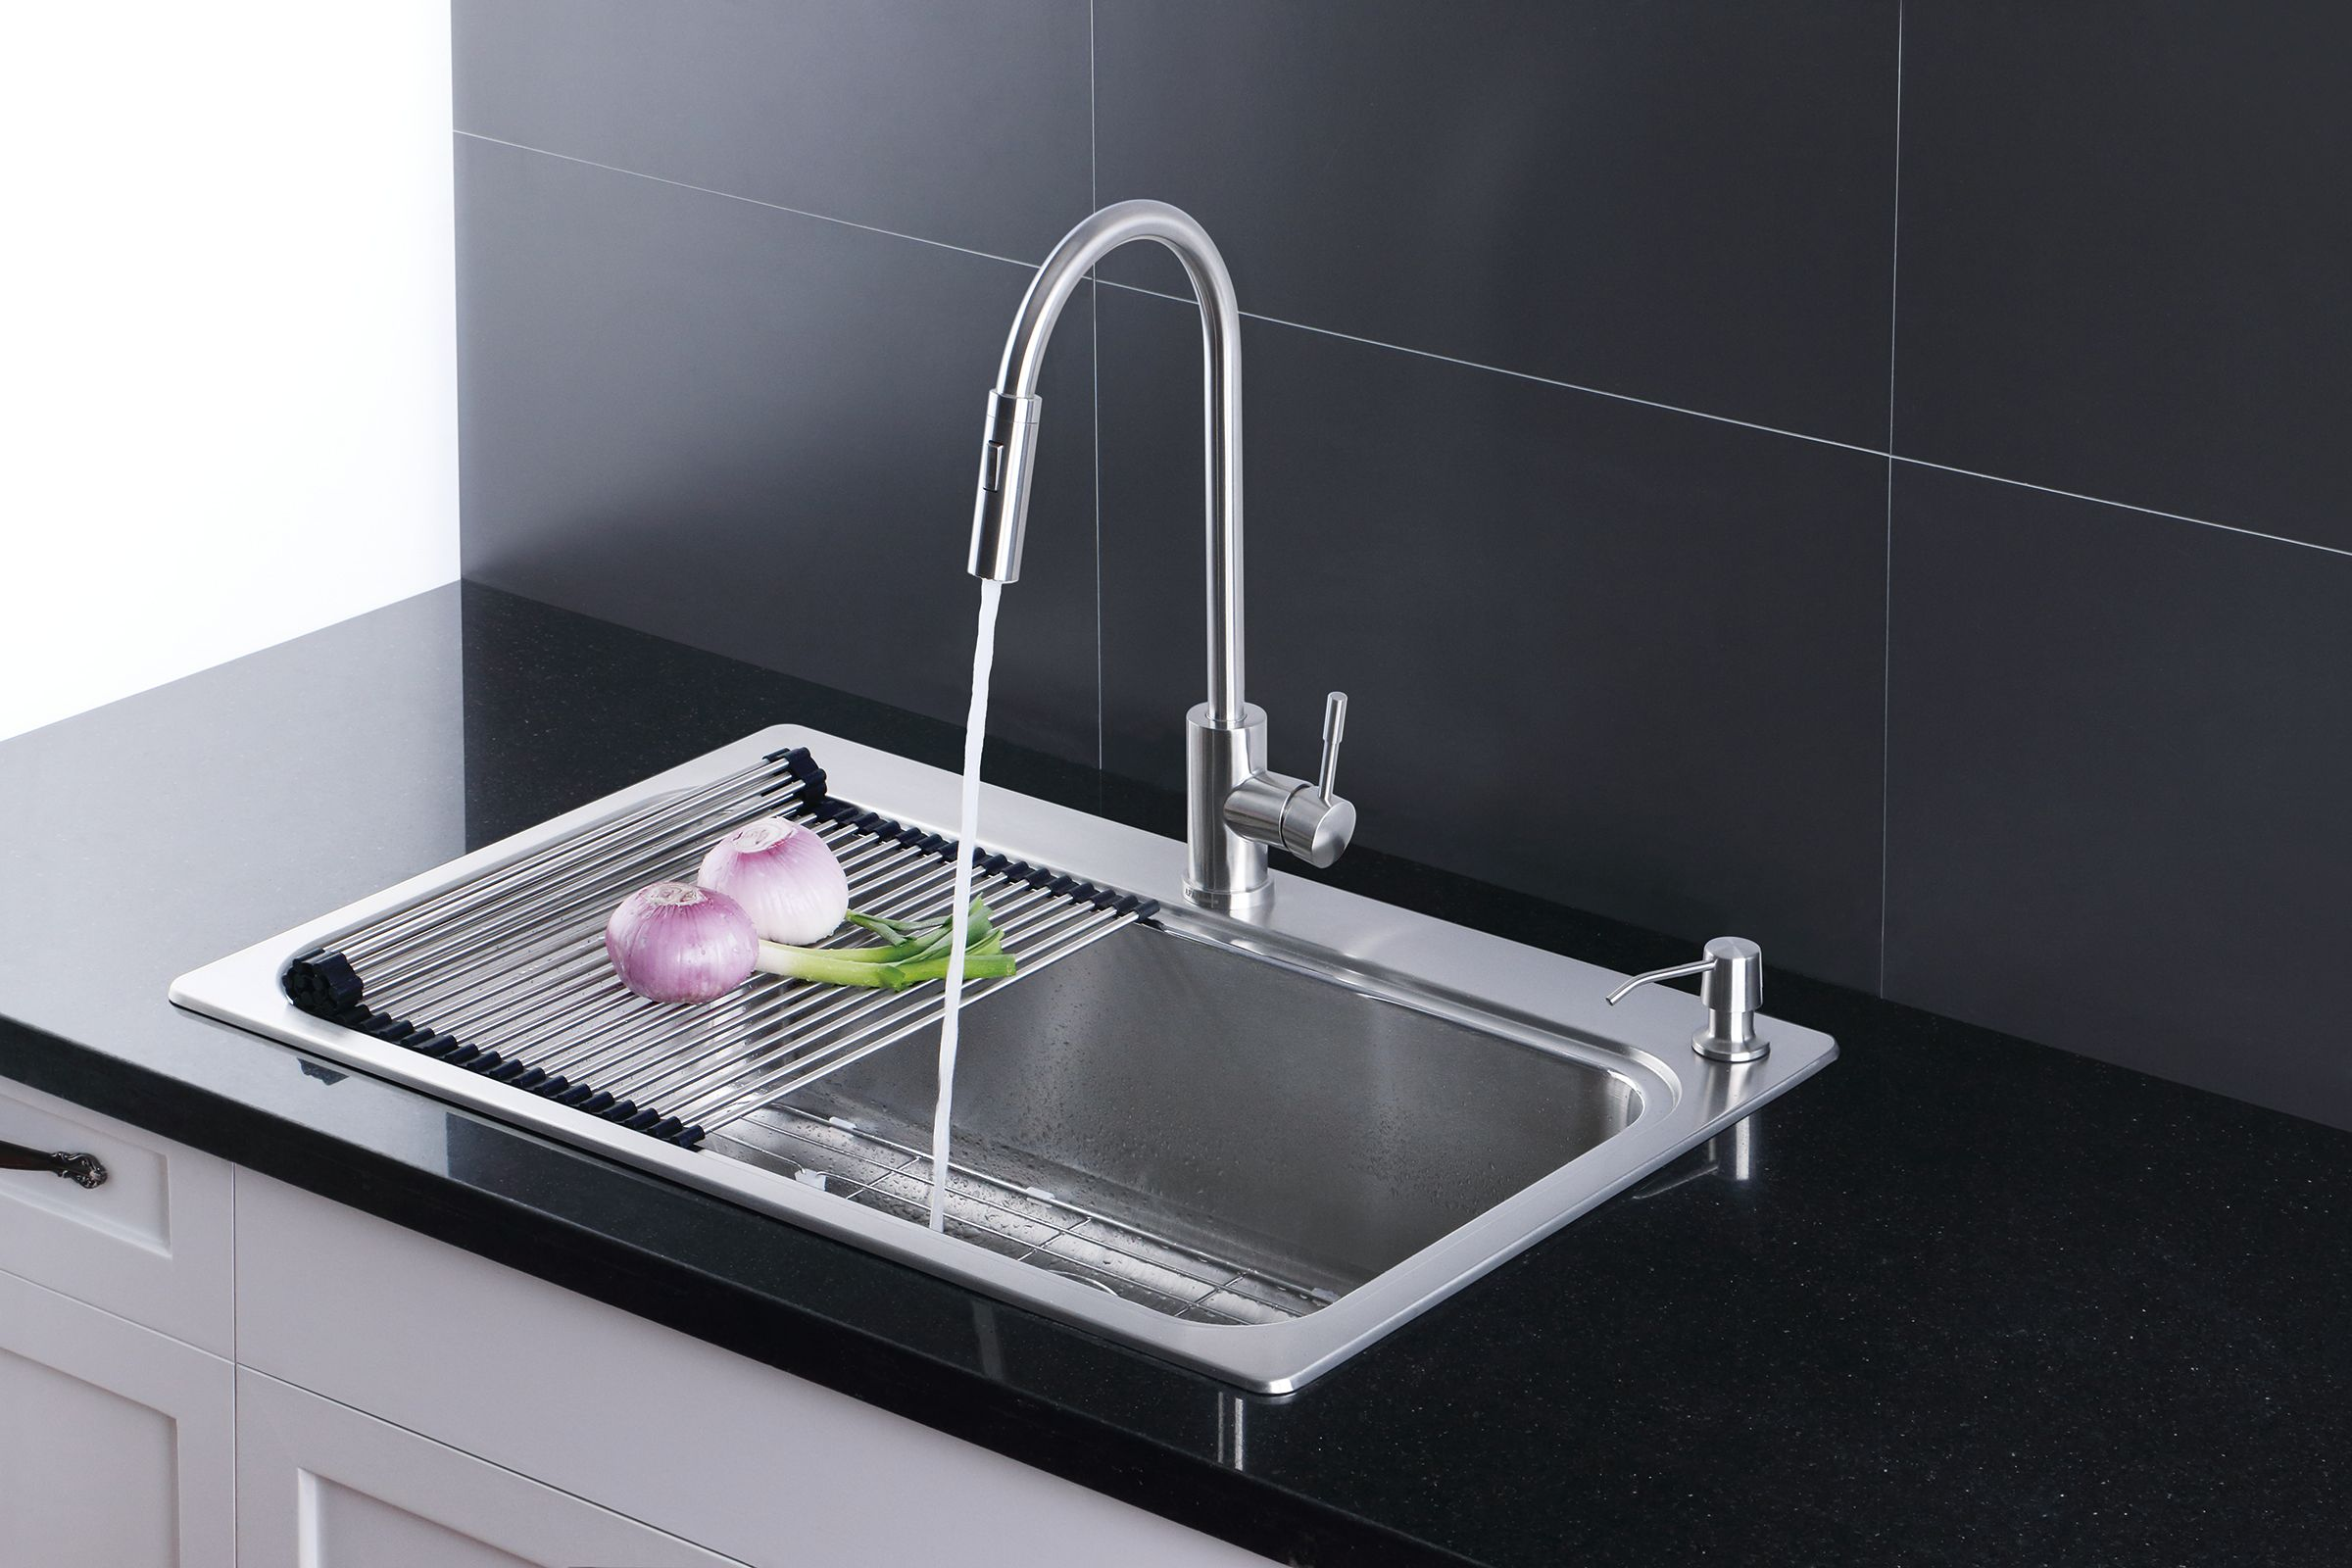 Afa Stainless Is A World Cl Manufacturer And Industry Leader In Premium Steel Sinks Shower Systems Faucet Tapware